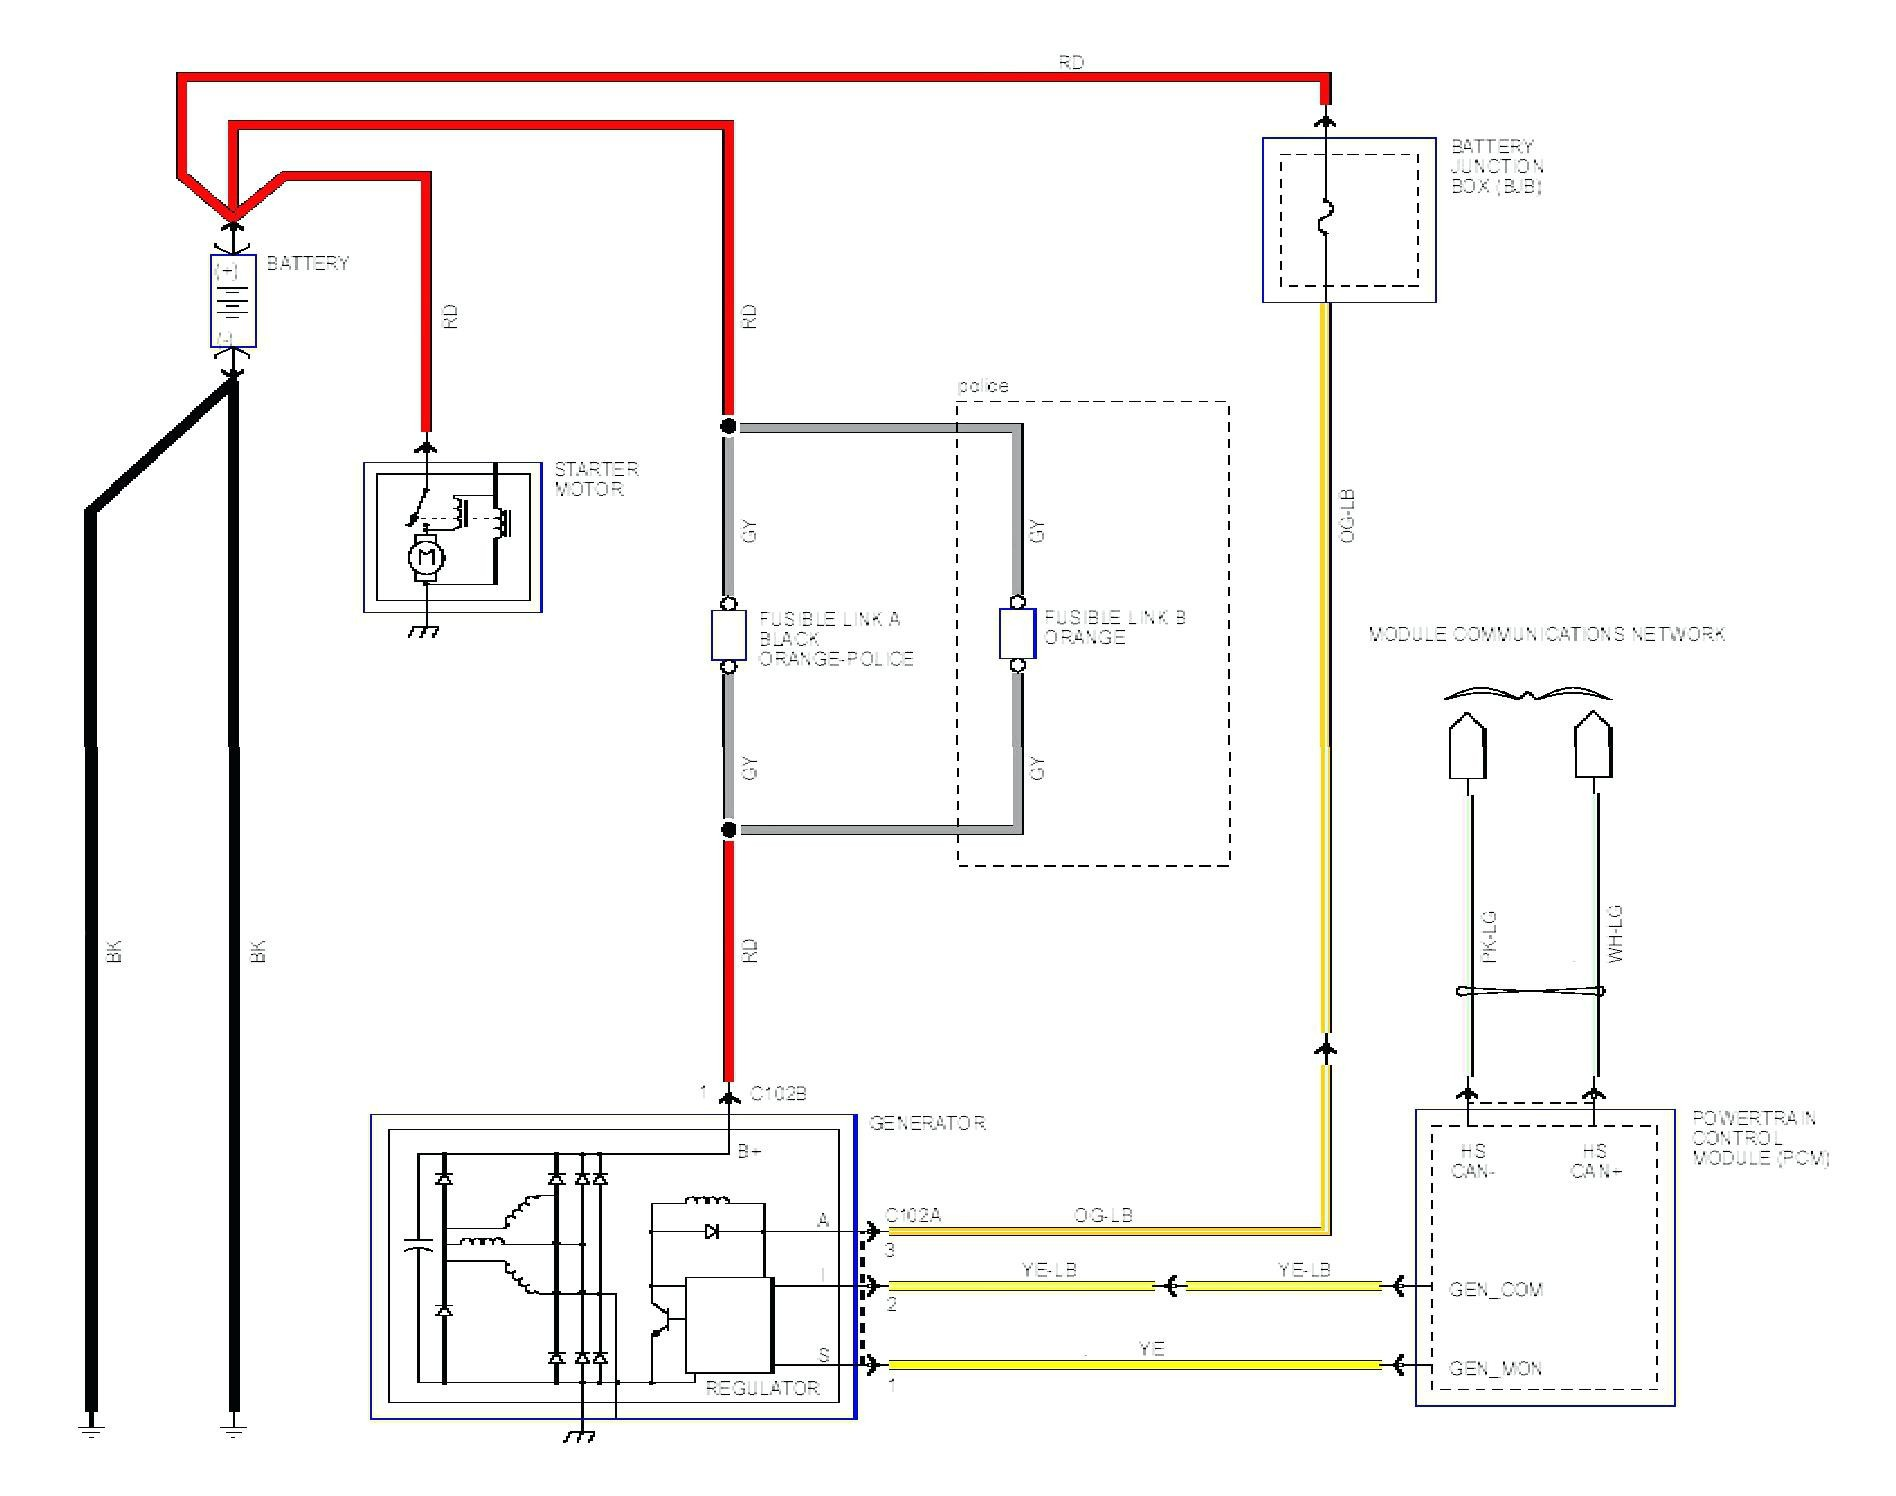 [ZSVE_7041]  NY_2950] Wiring Diagram Moreover Gm One Wire Alternator Wiring Diagram | Gm Alt Wiring Diagram |  | Tran Isra Gious Alma Bemua Tixat Trons Mohammedshrine Librar Wiring 101